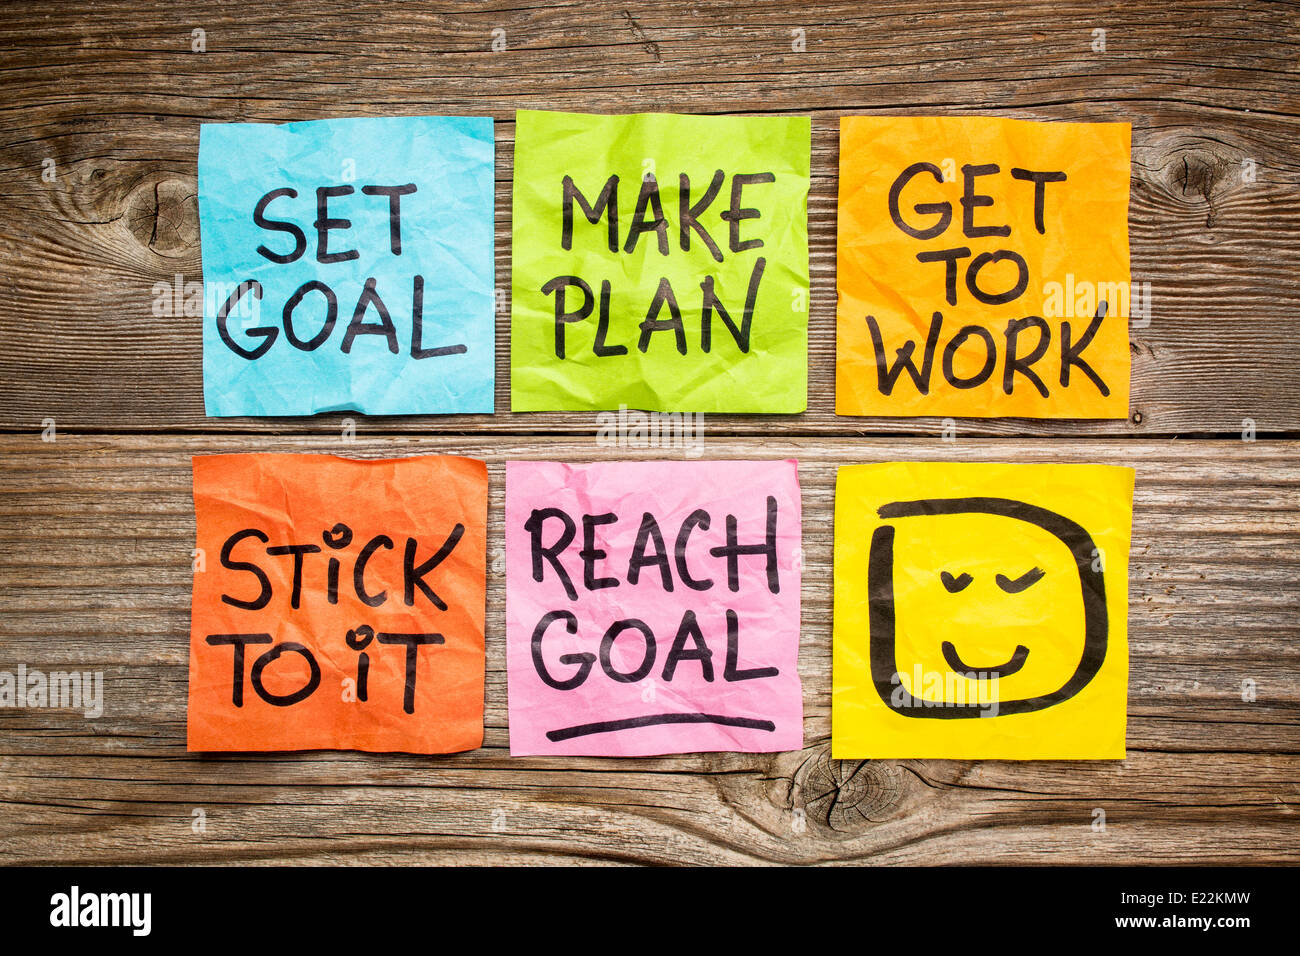 set you goal for success 5 steps to success in achieving goals achieving goals is powerful and affects our success in life when we dare to dream about what we truly desire and set goals in that direction, a powerful shift happens.